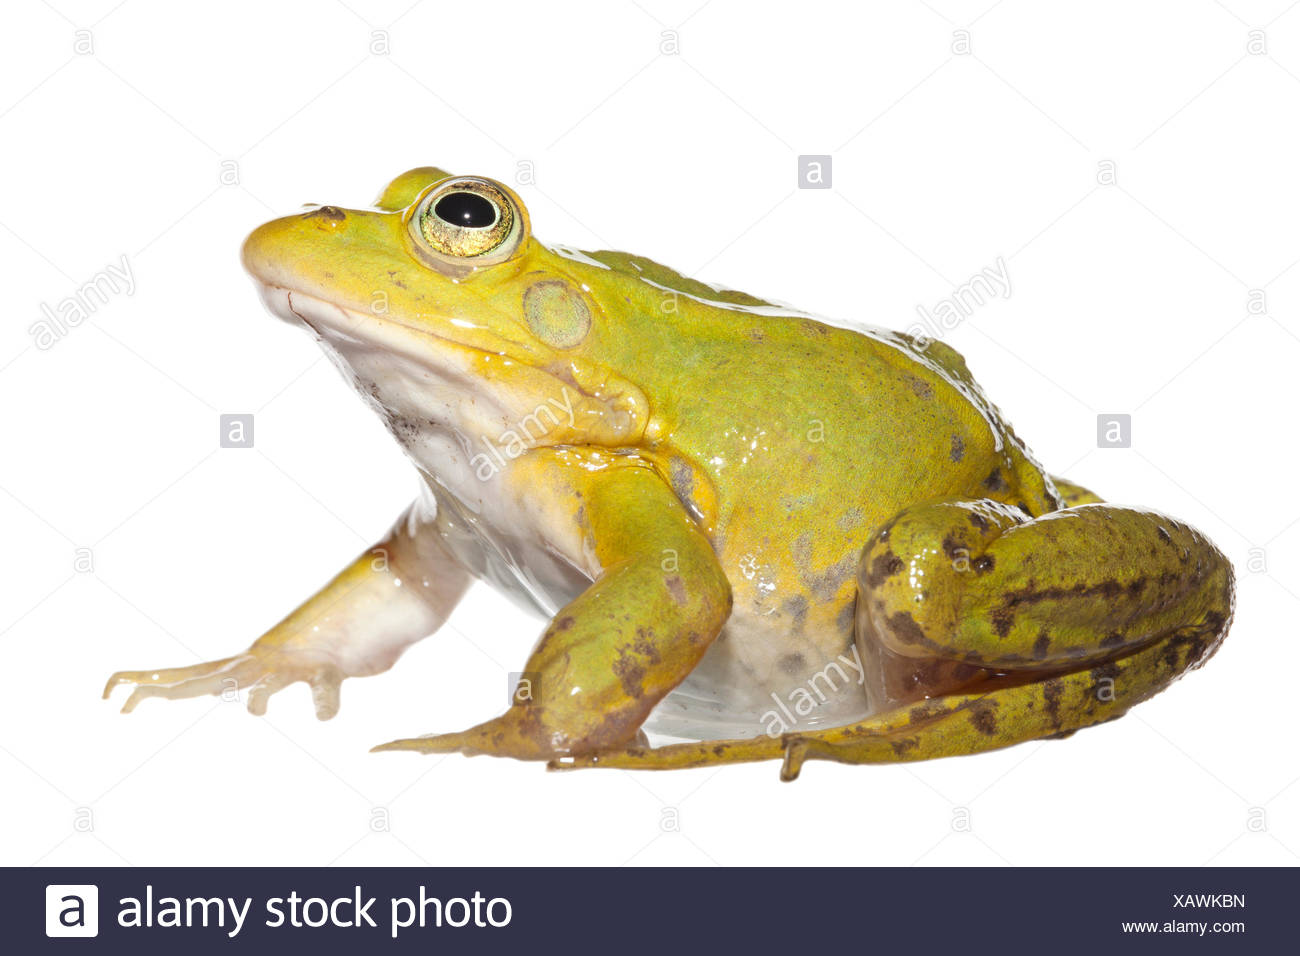 Pool frog isolated on white background - Stock Image